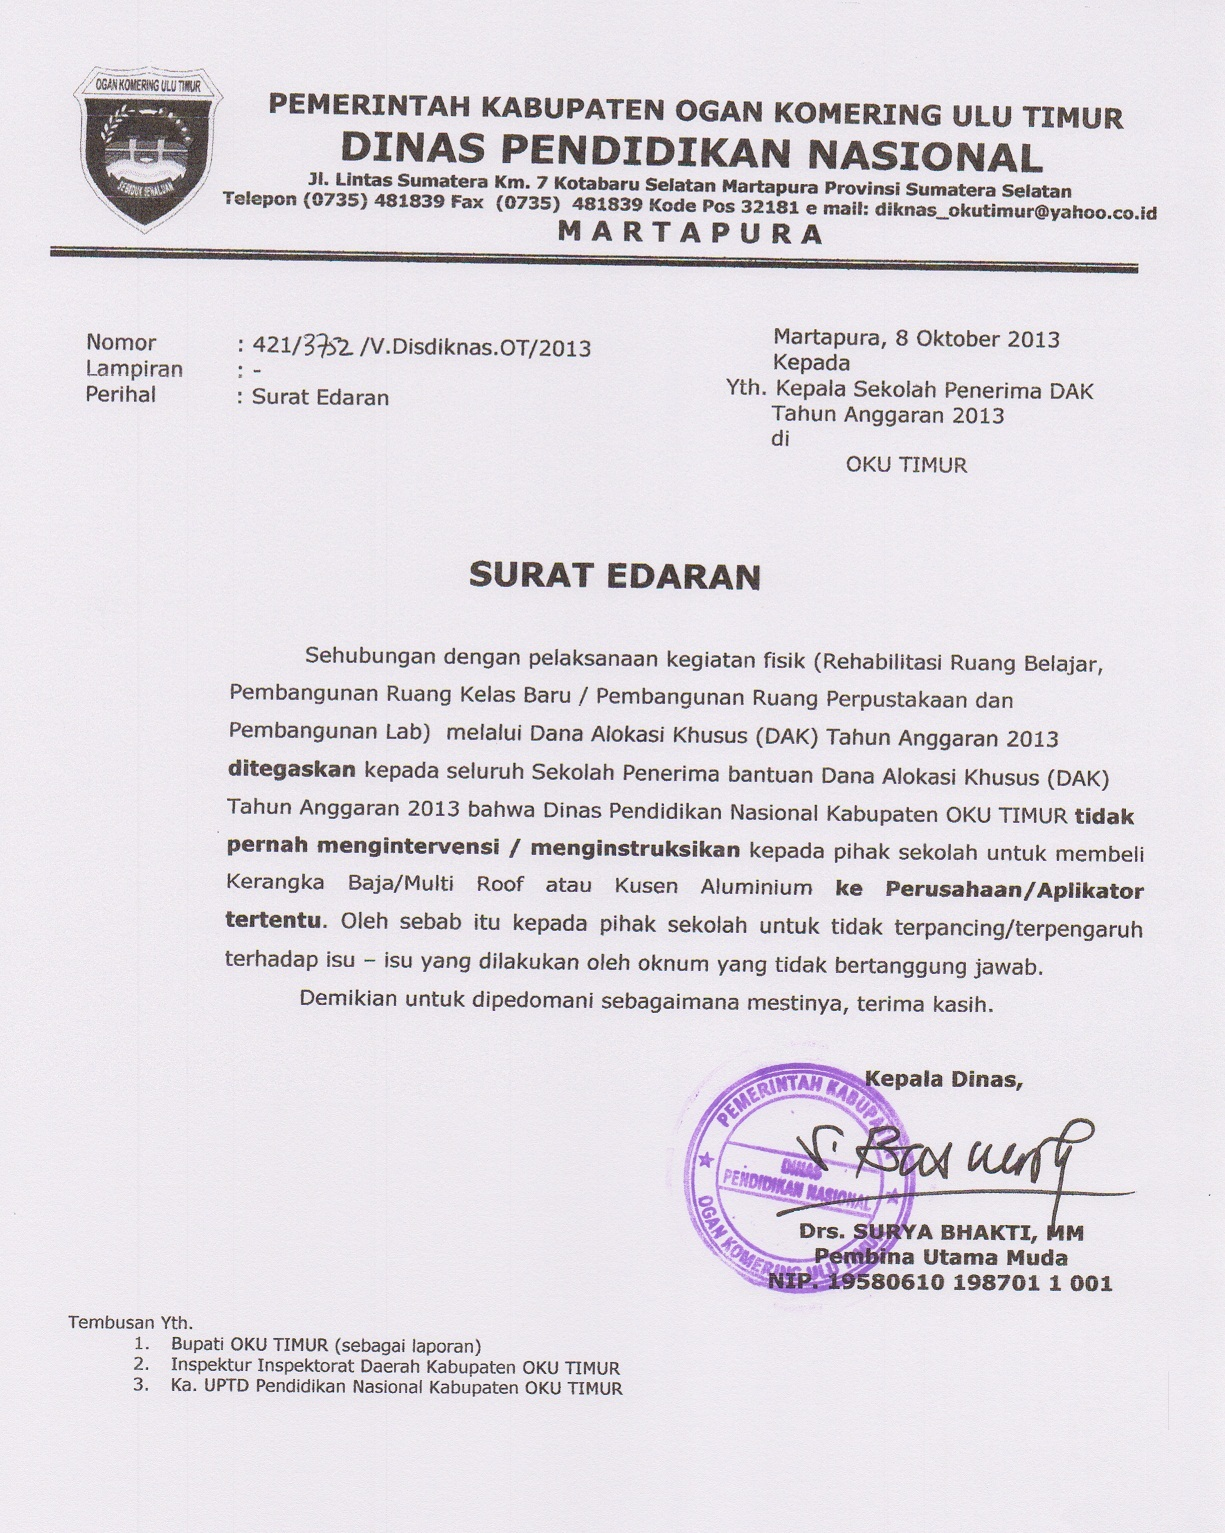 Surat Edaran Penerima Dak Learning By Sharing